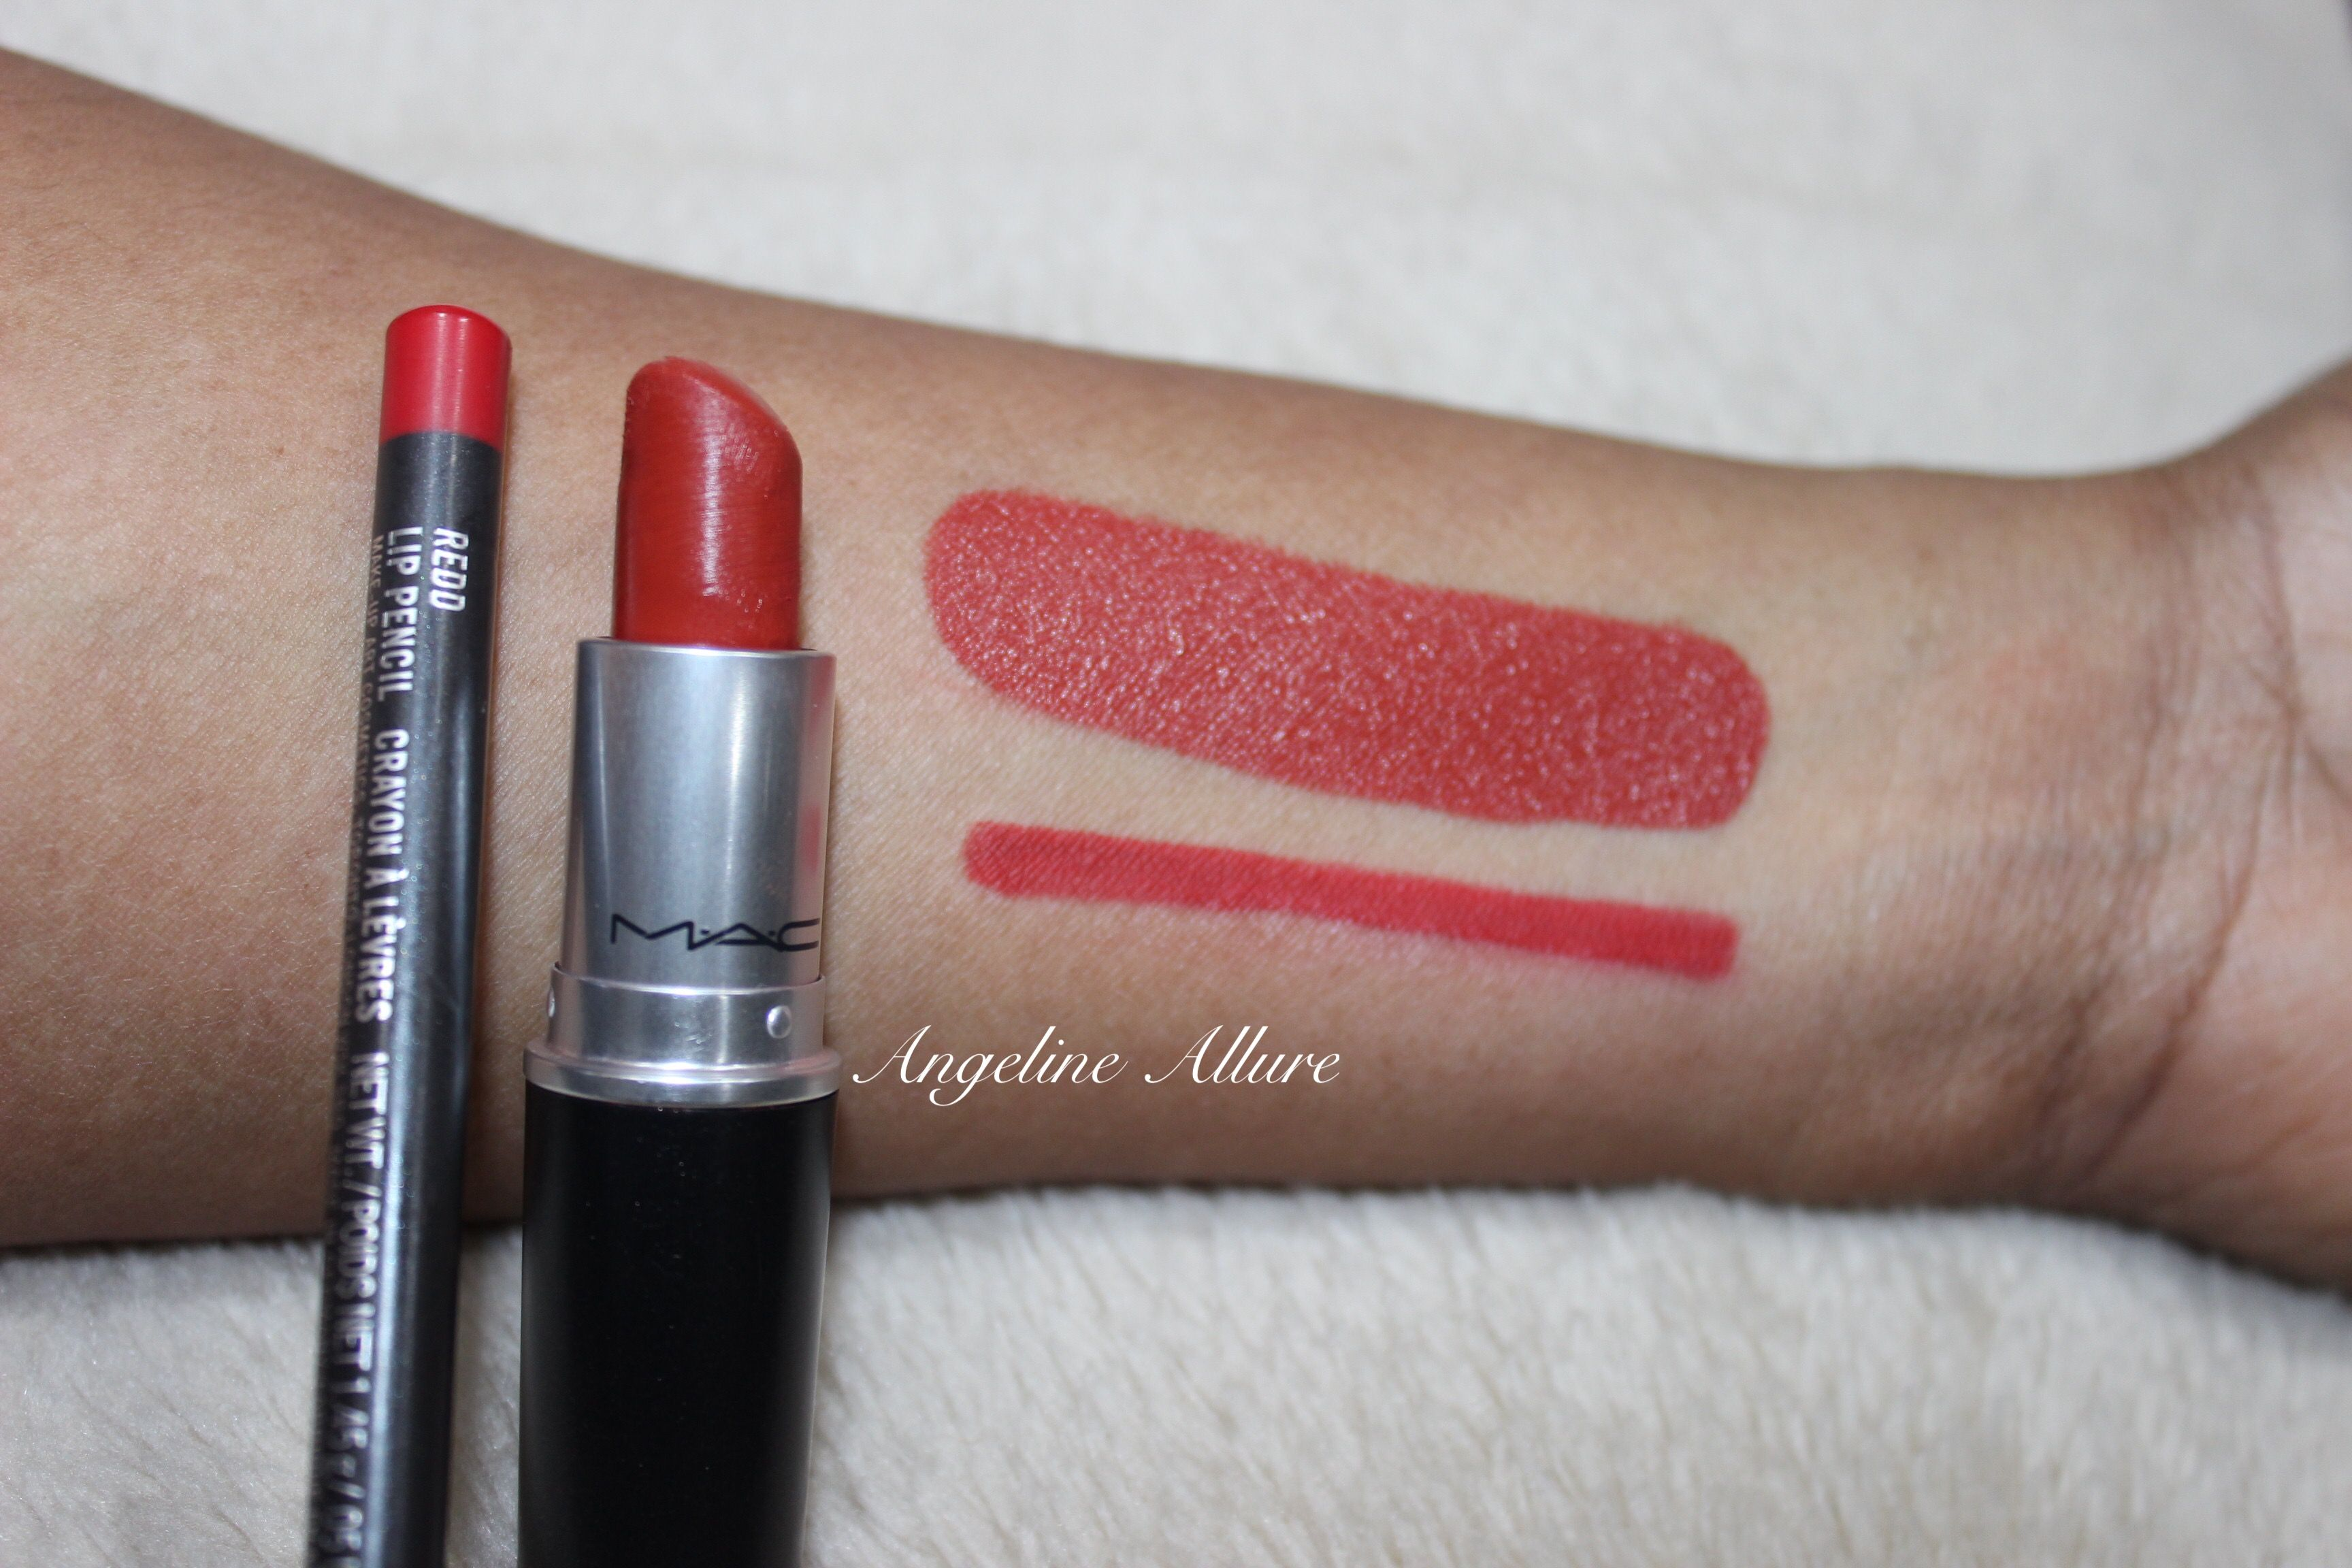 1. Two-Toned Lips: